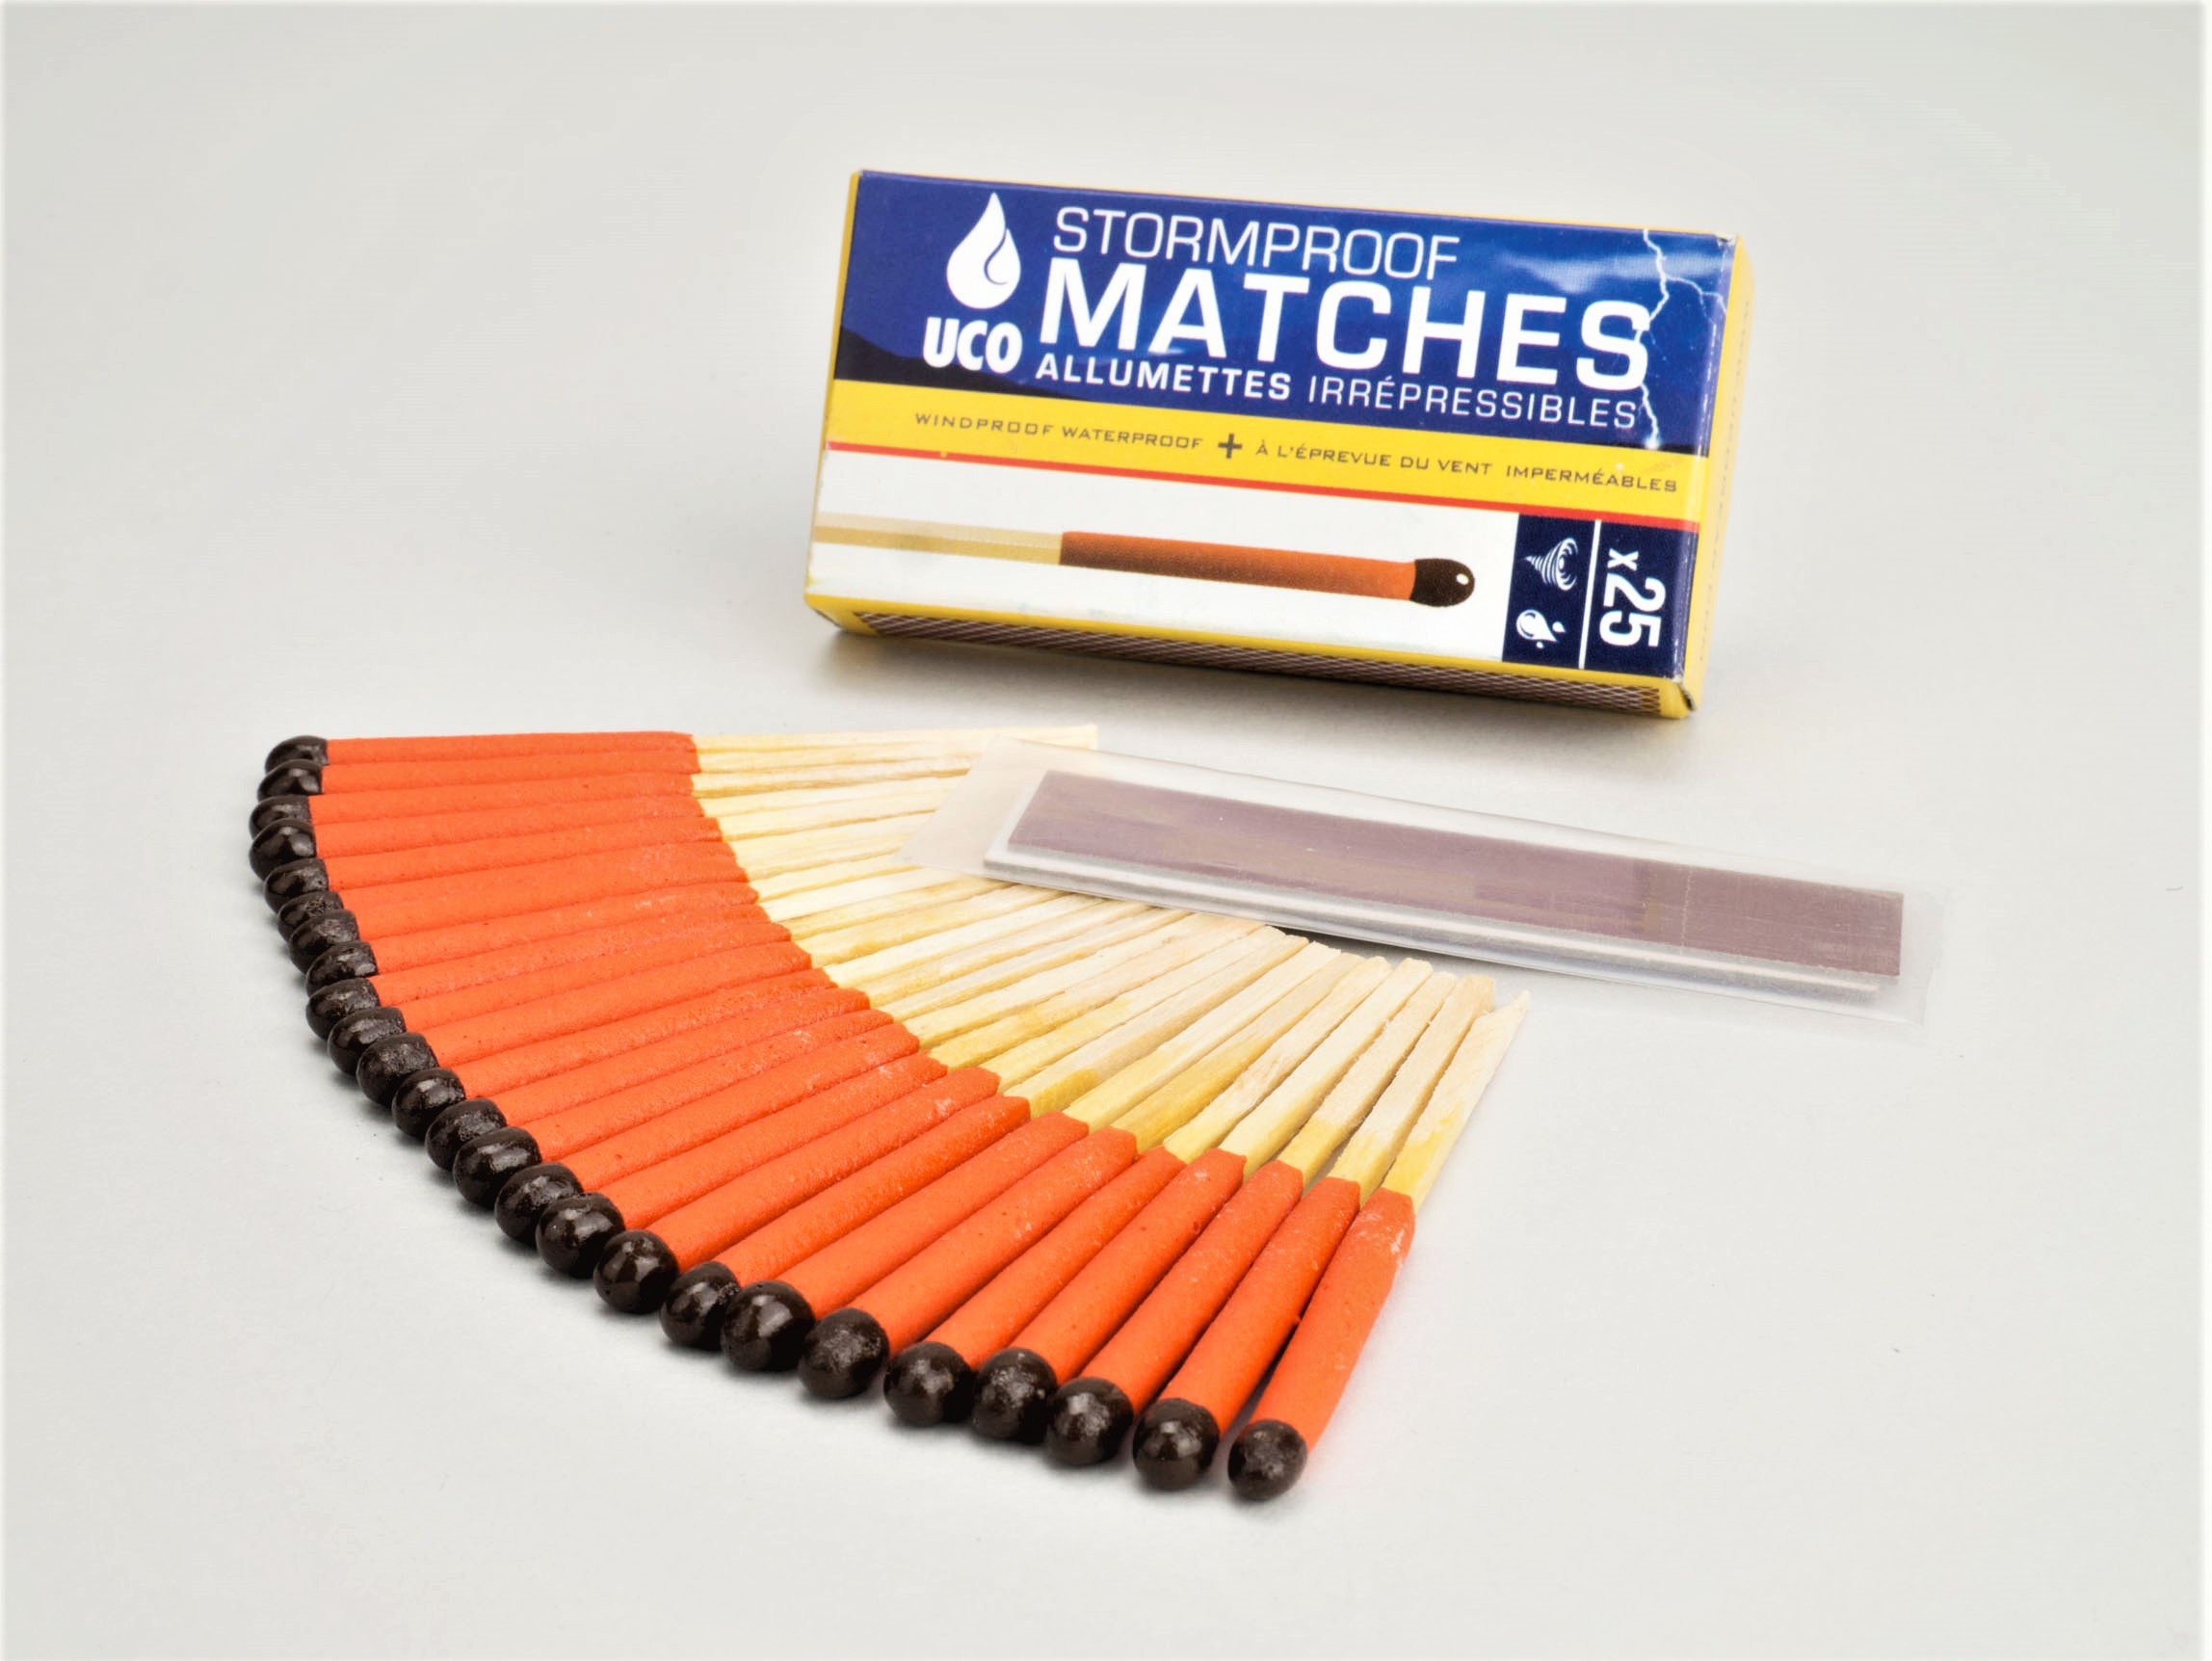 REAL STORMPROOF MATCHES € 5,95